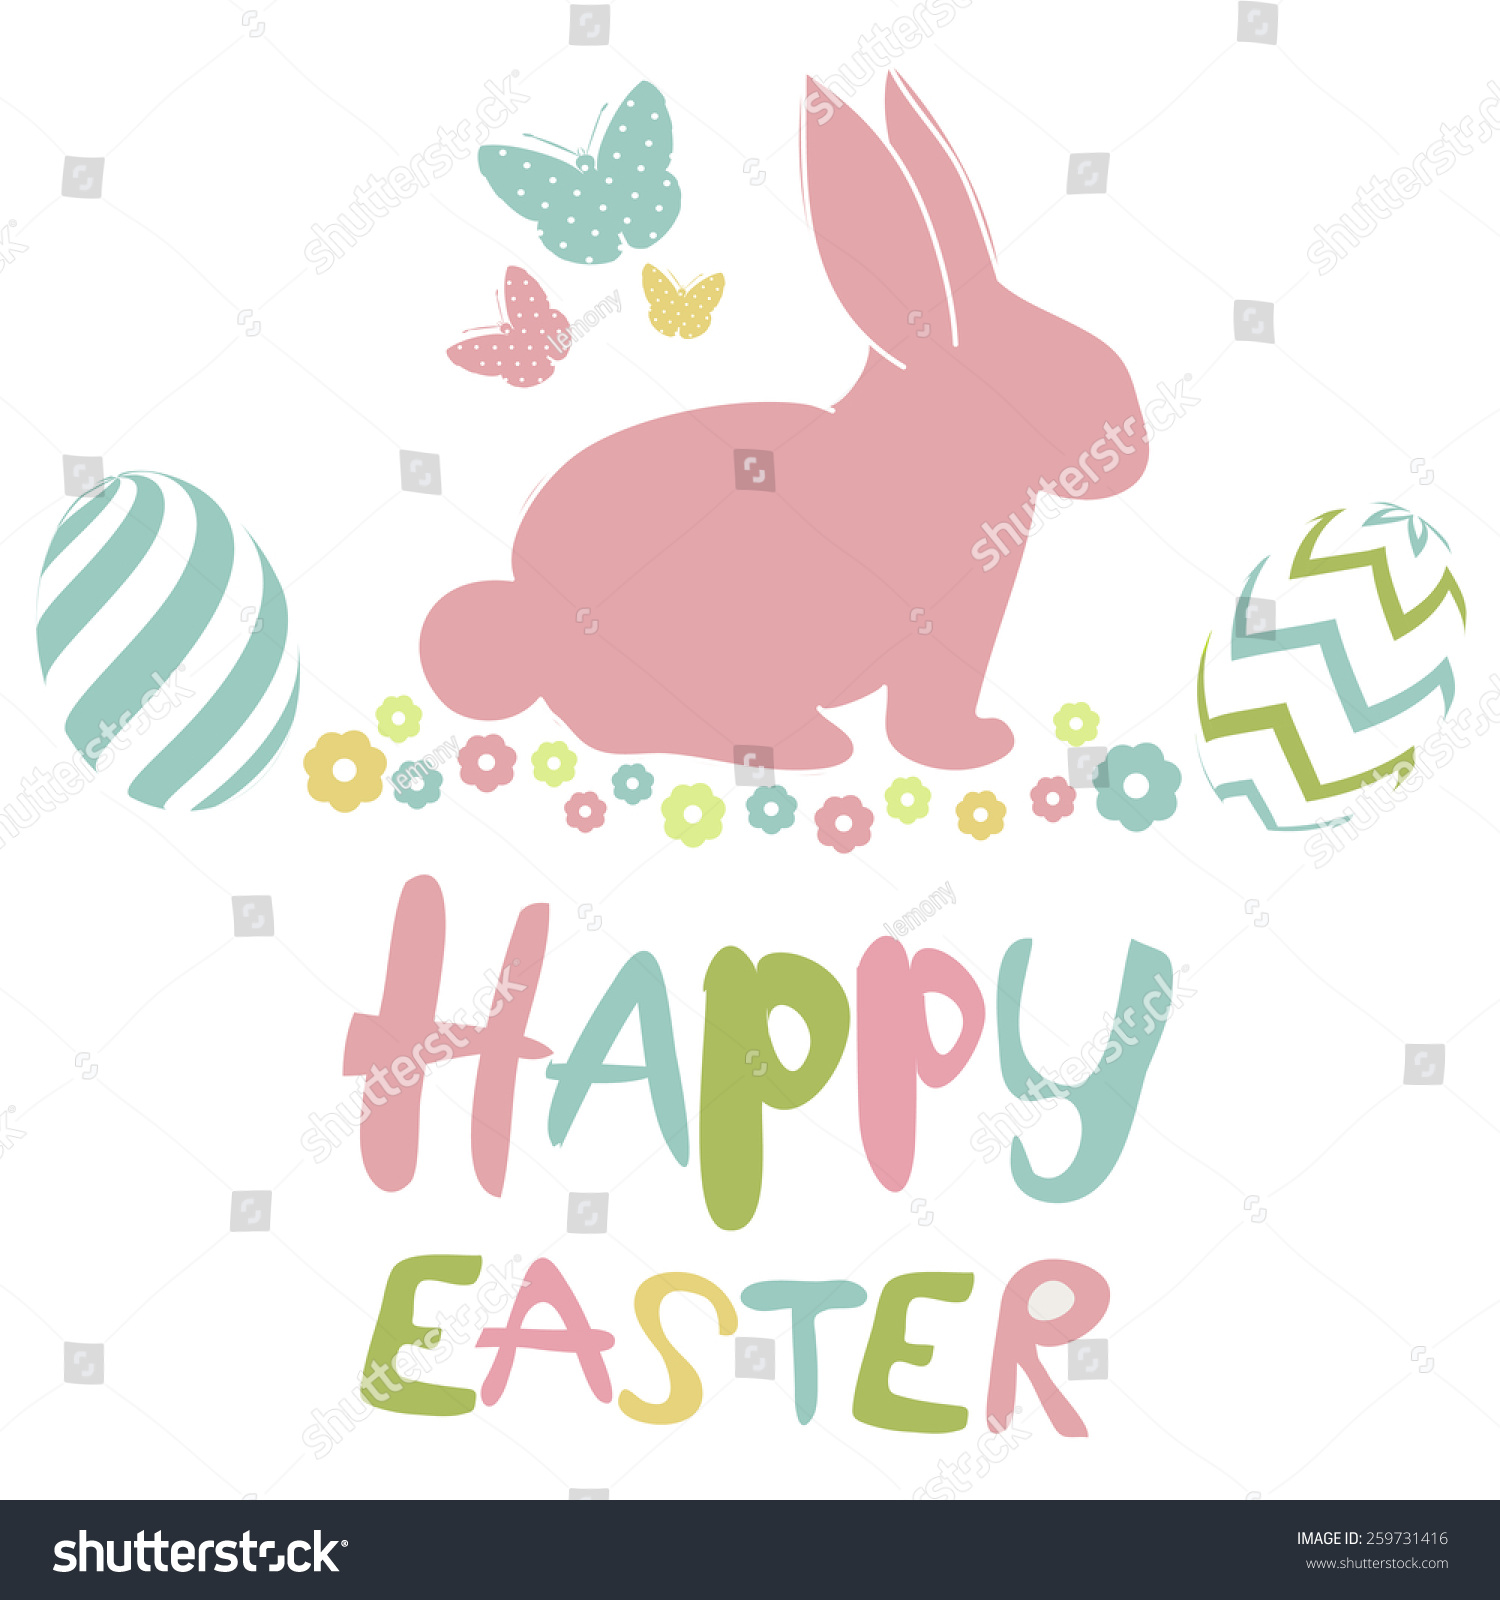 Happy Easter Card Stock Vector Illustration 259731416 ...